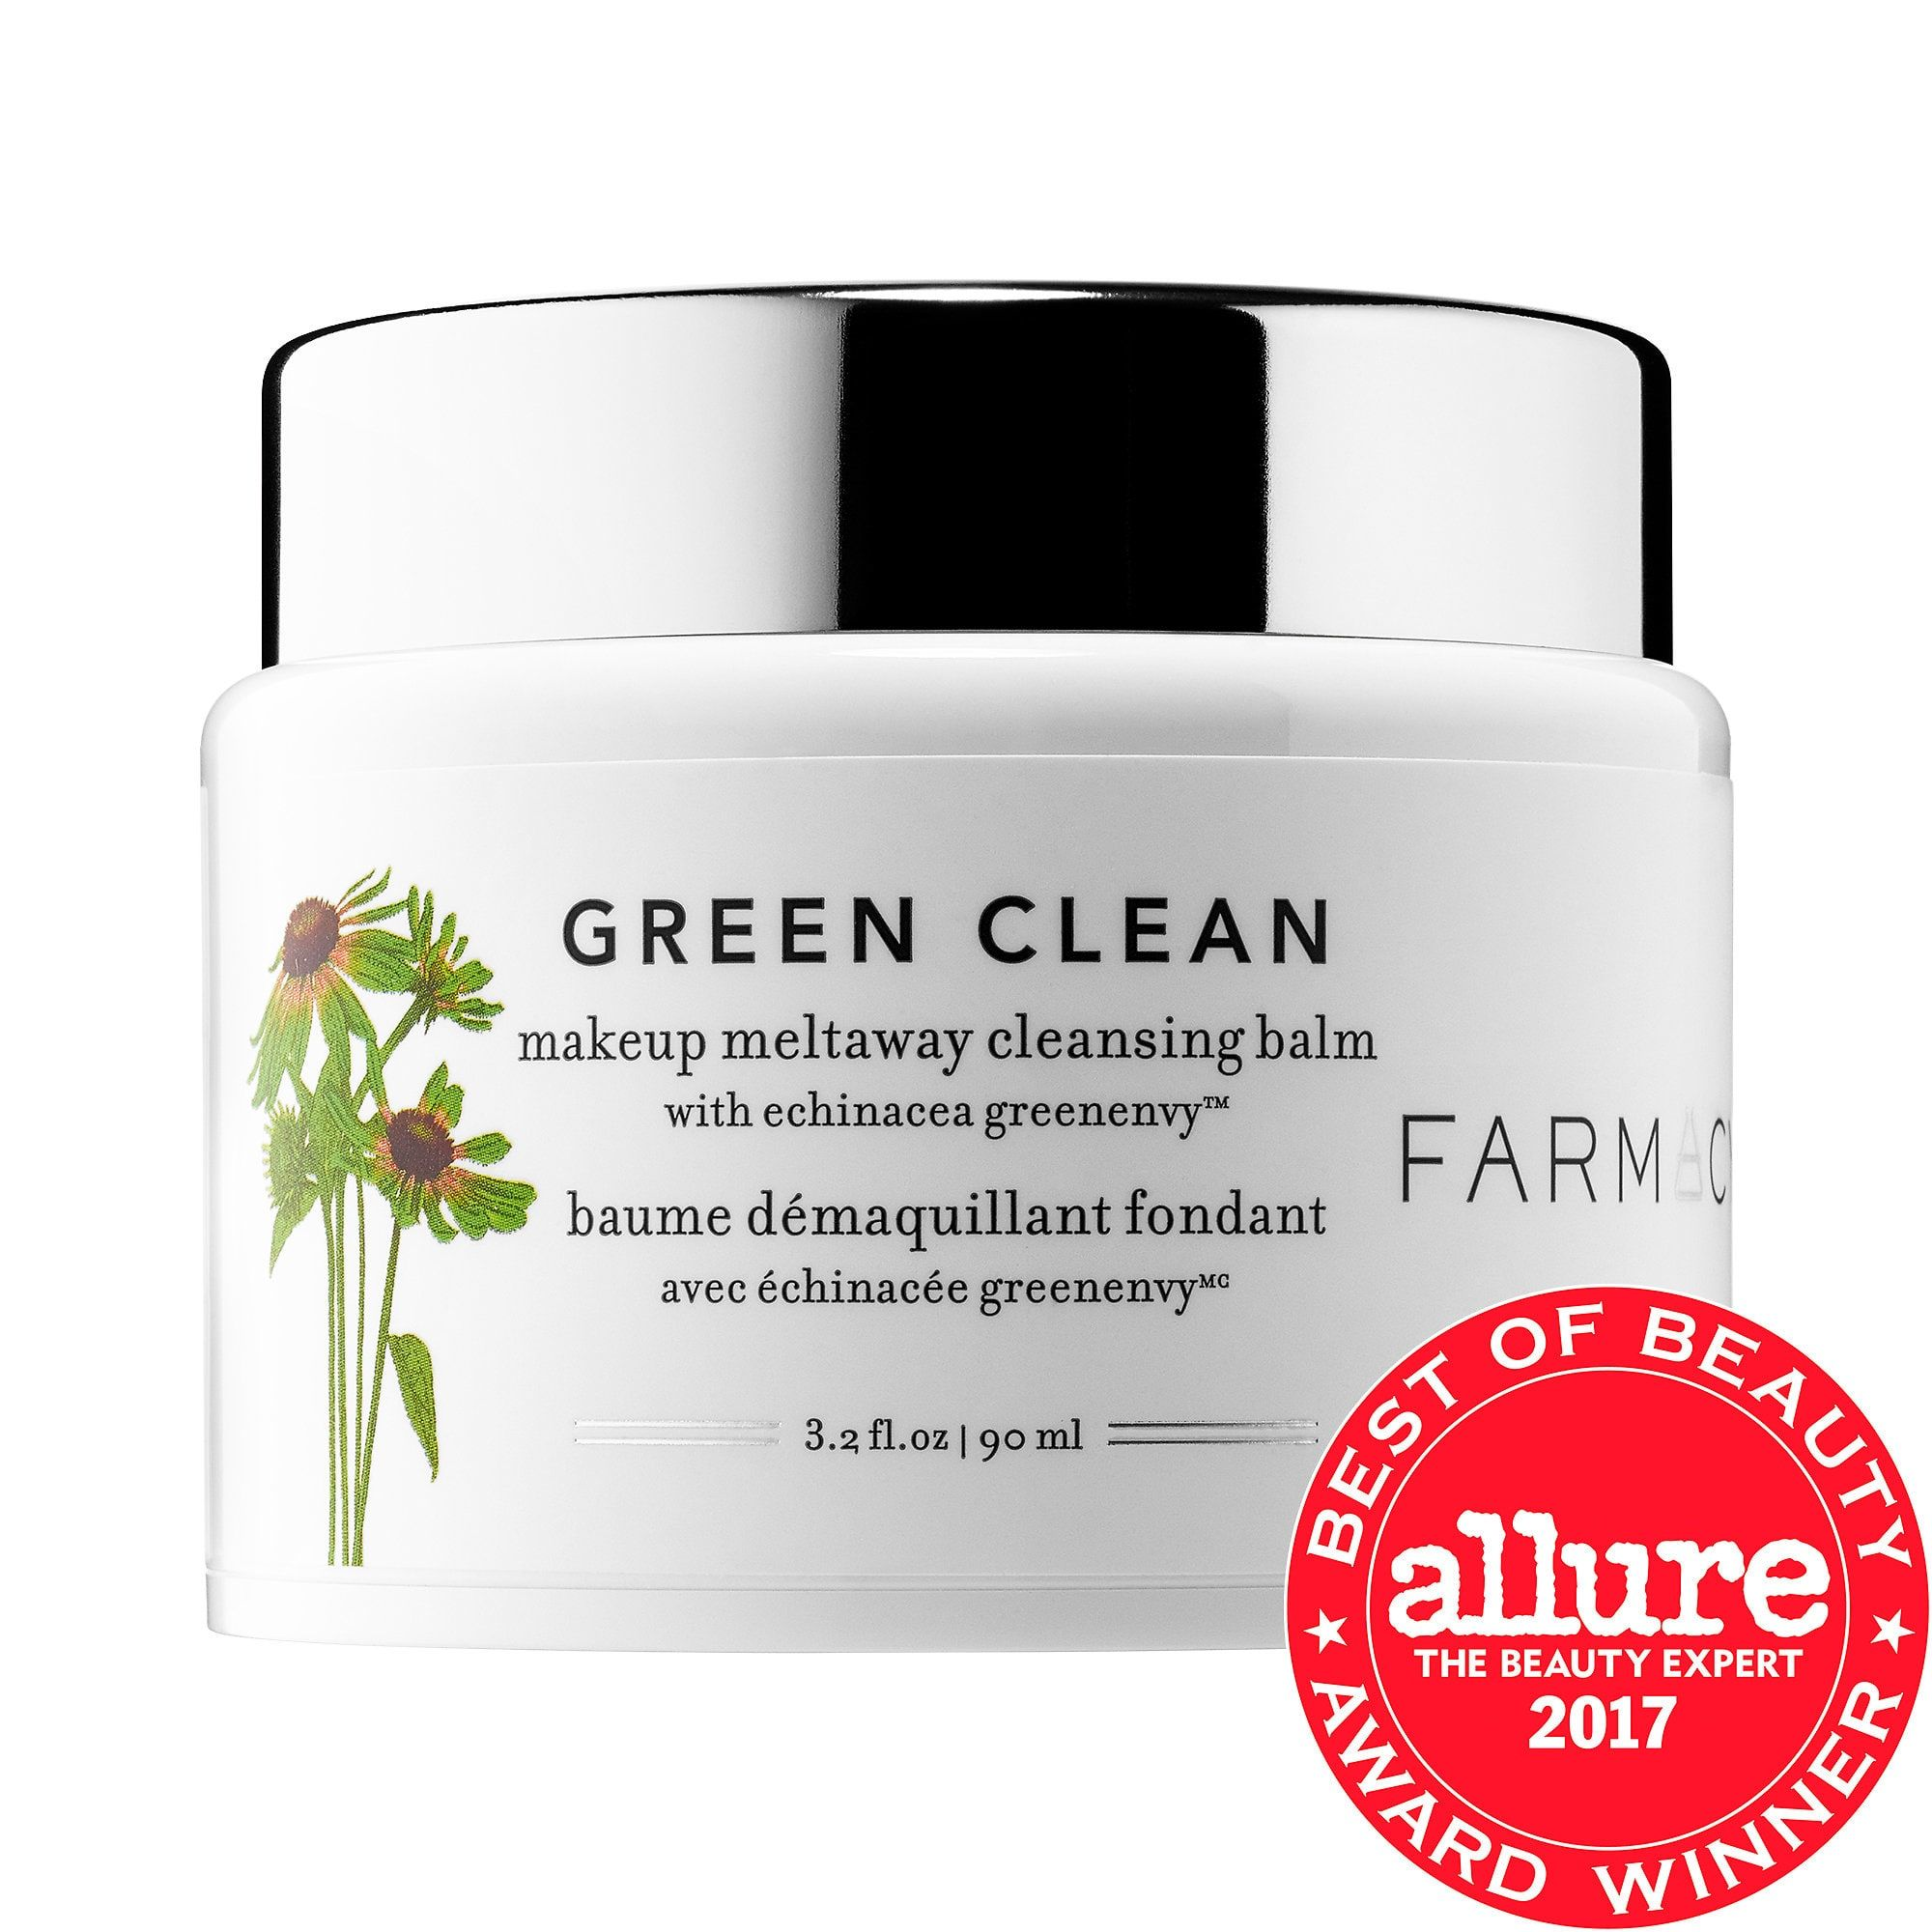 Green Clean Makeup Meltaway Cleansing Balm with Echinacea